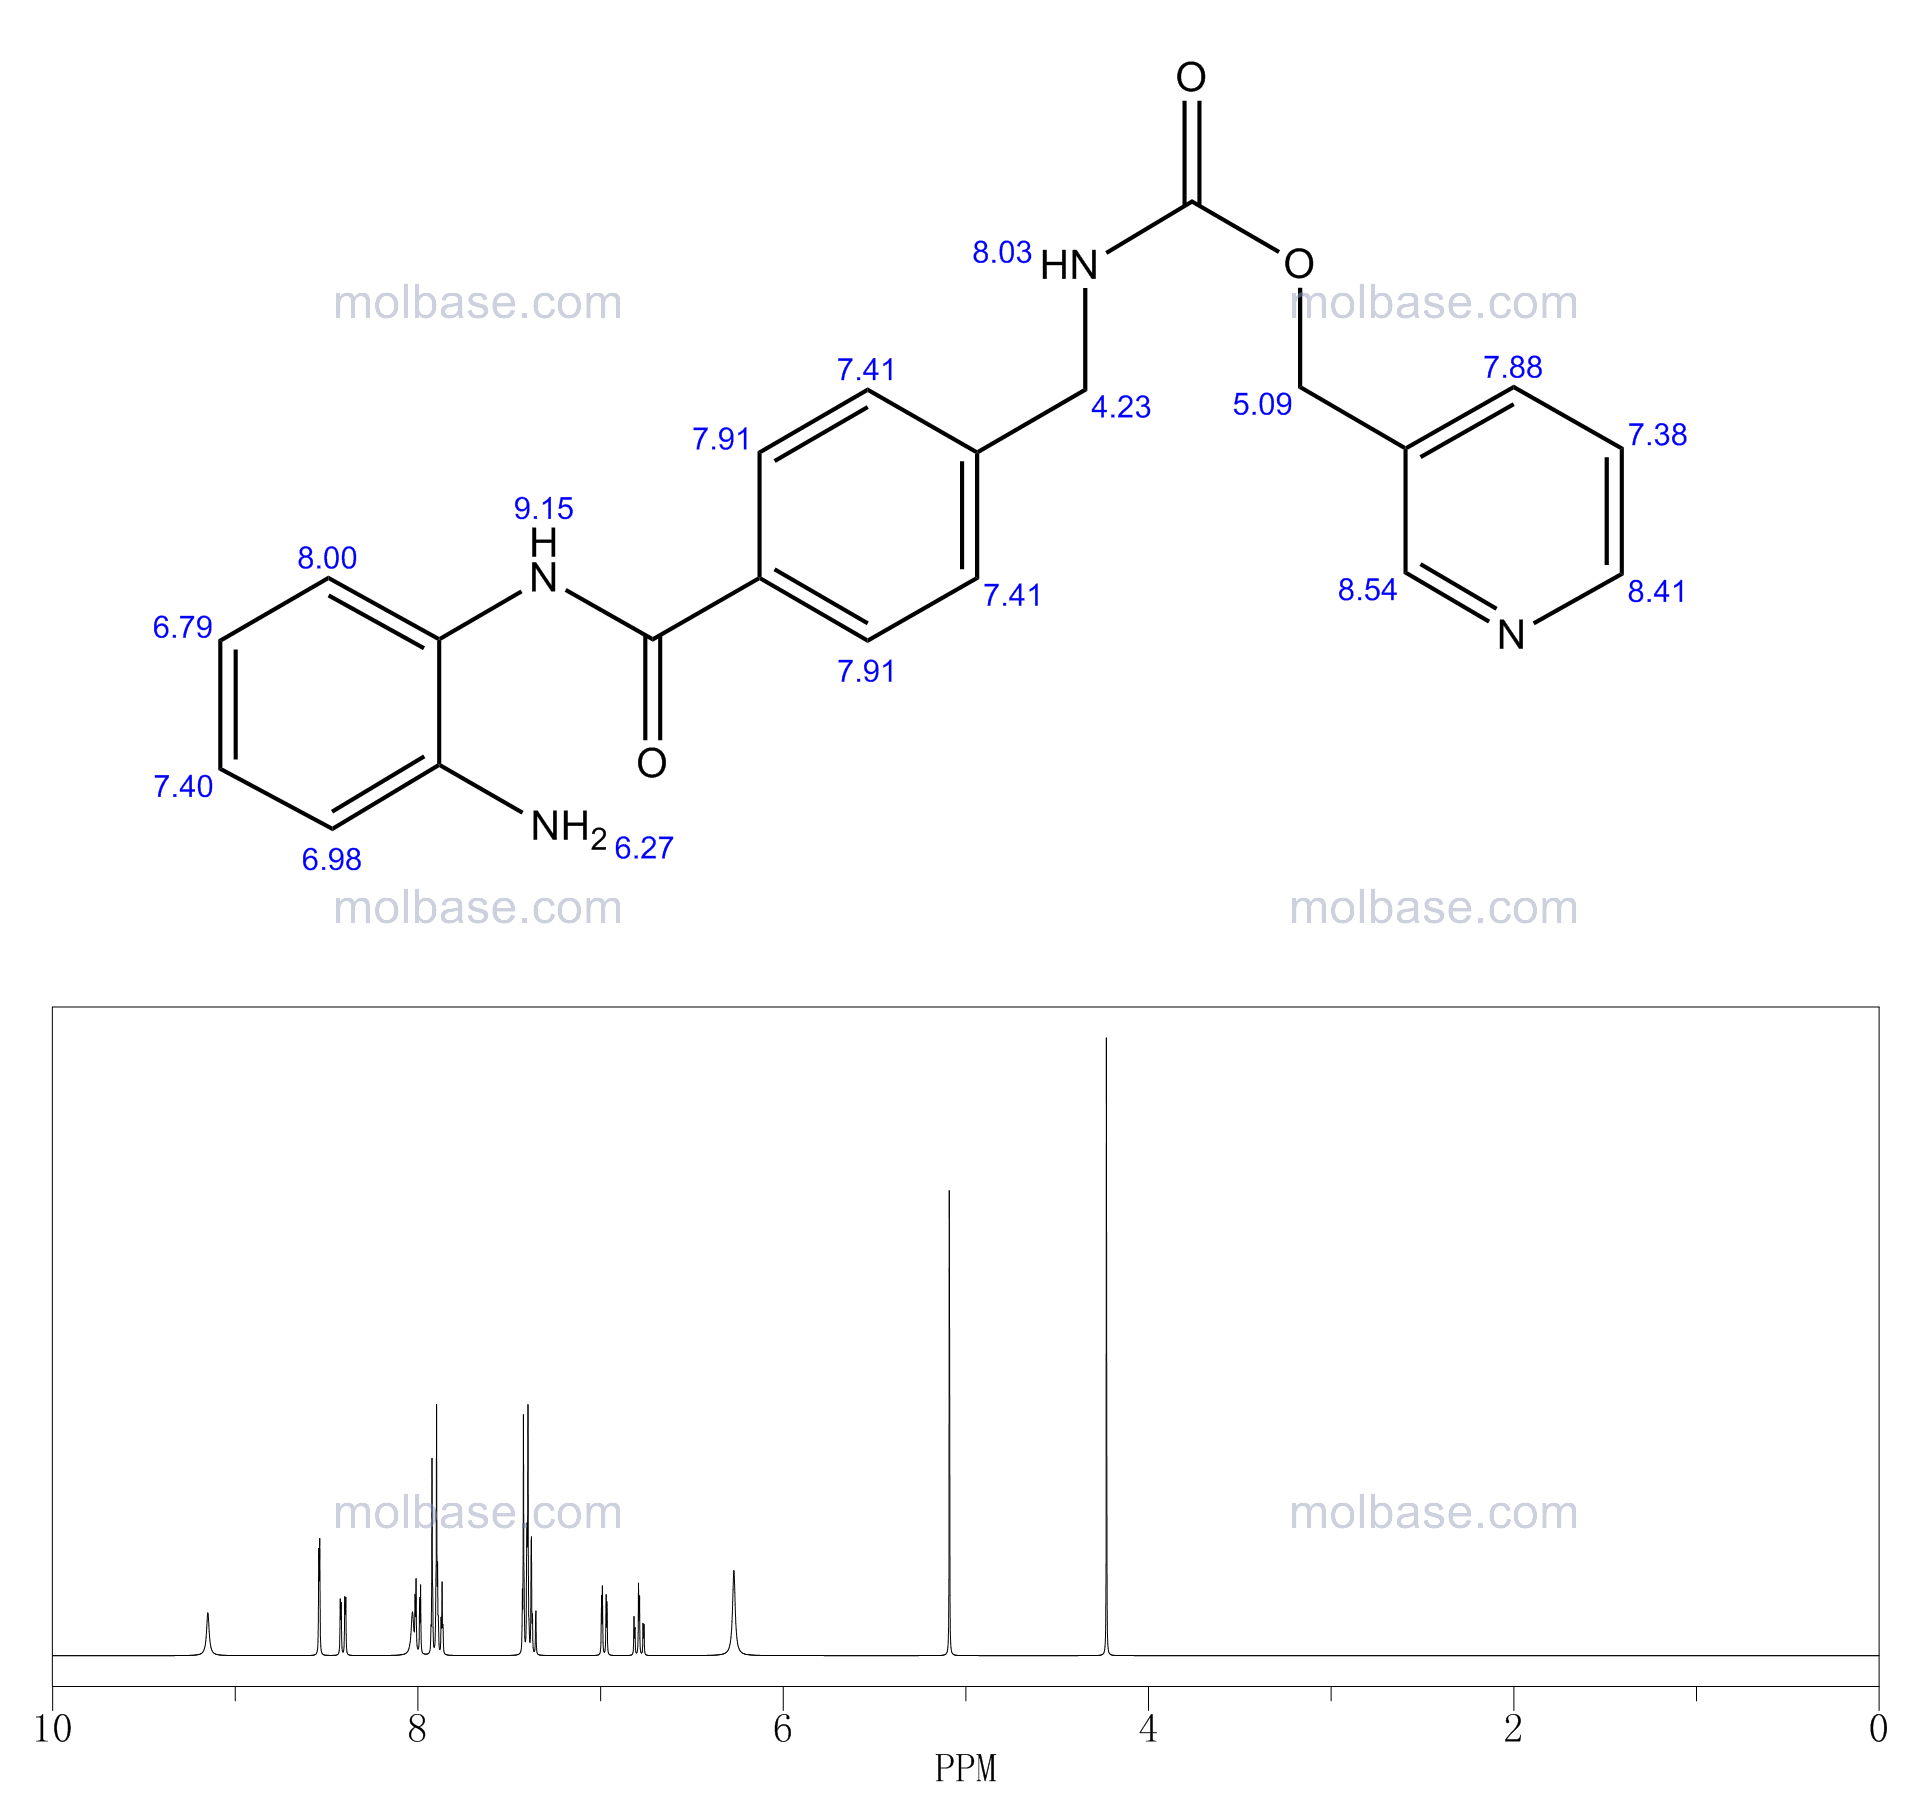 N-(2-aminophenyl)-4-[N-(pyridin-3-yl)methoxycarbonylaminomethyl]benzamide NMR spectra analysis, Chemical CAS NO. 209783-80-2 NMR spectral analysis, N-(2-aminophenyl)-4-[N-(pyridin-3-yl)methoxycarbonylaminomethyl]benzamide C-NMR spectrum